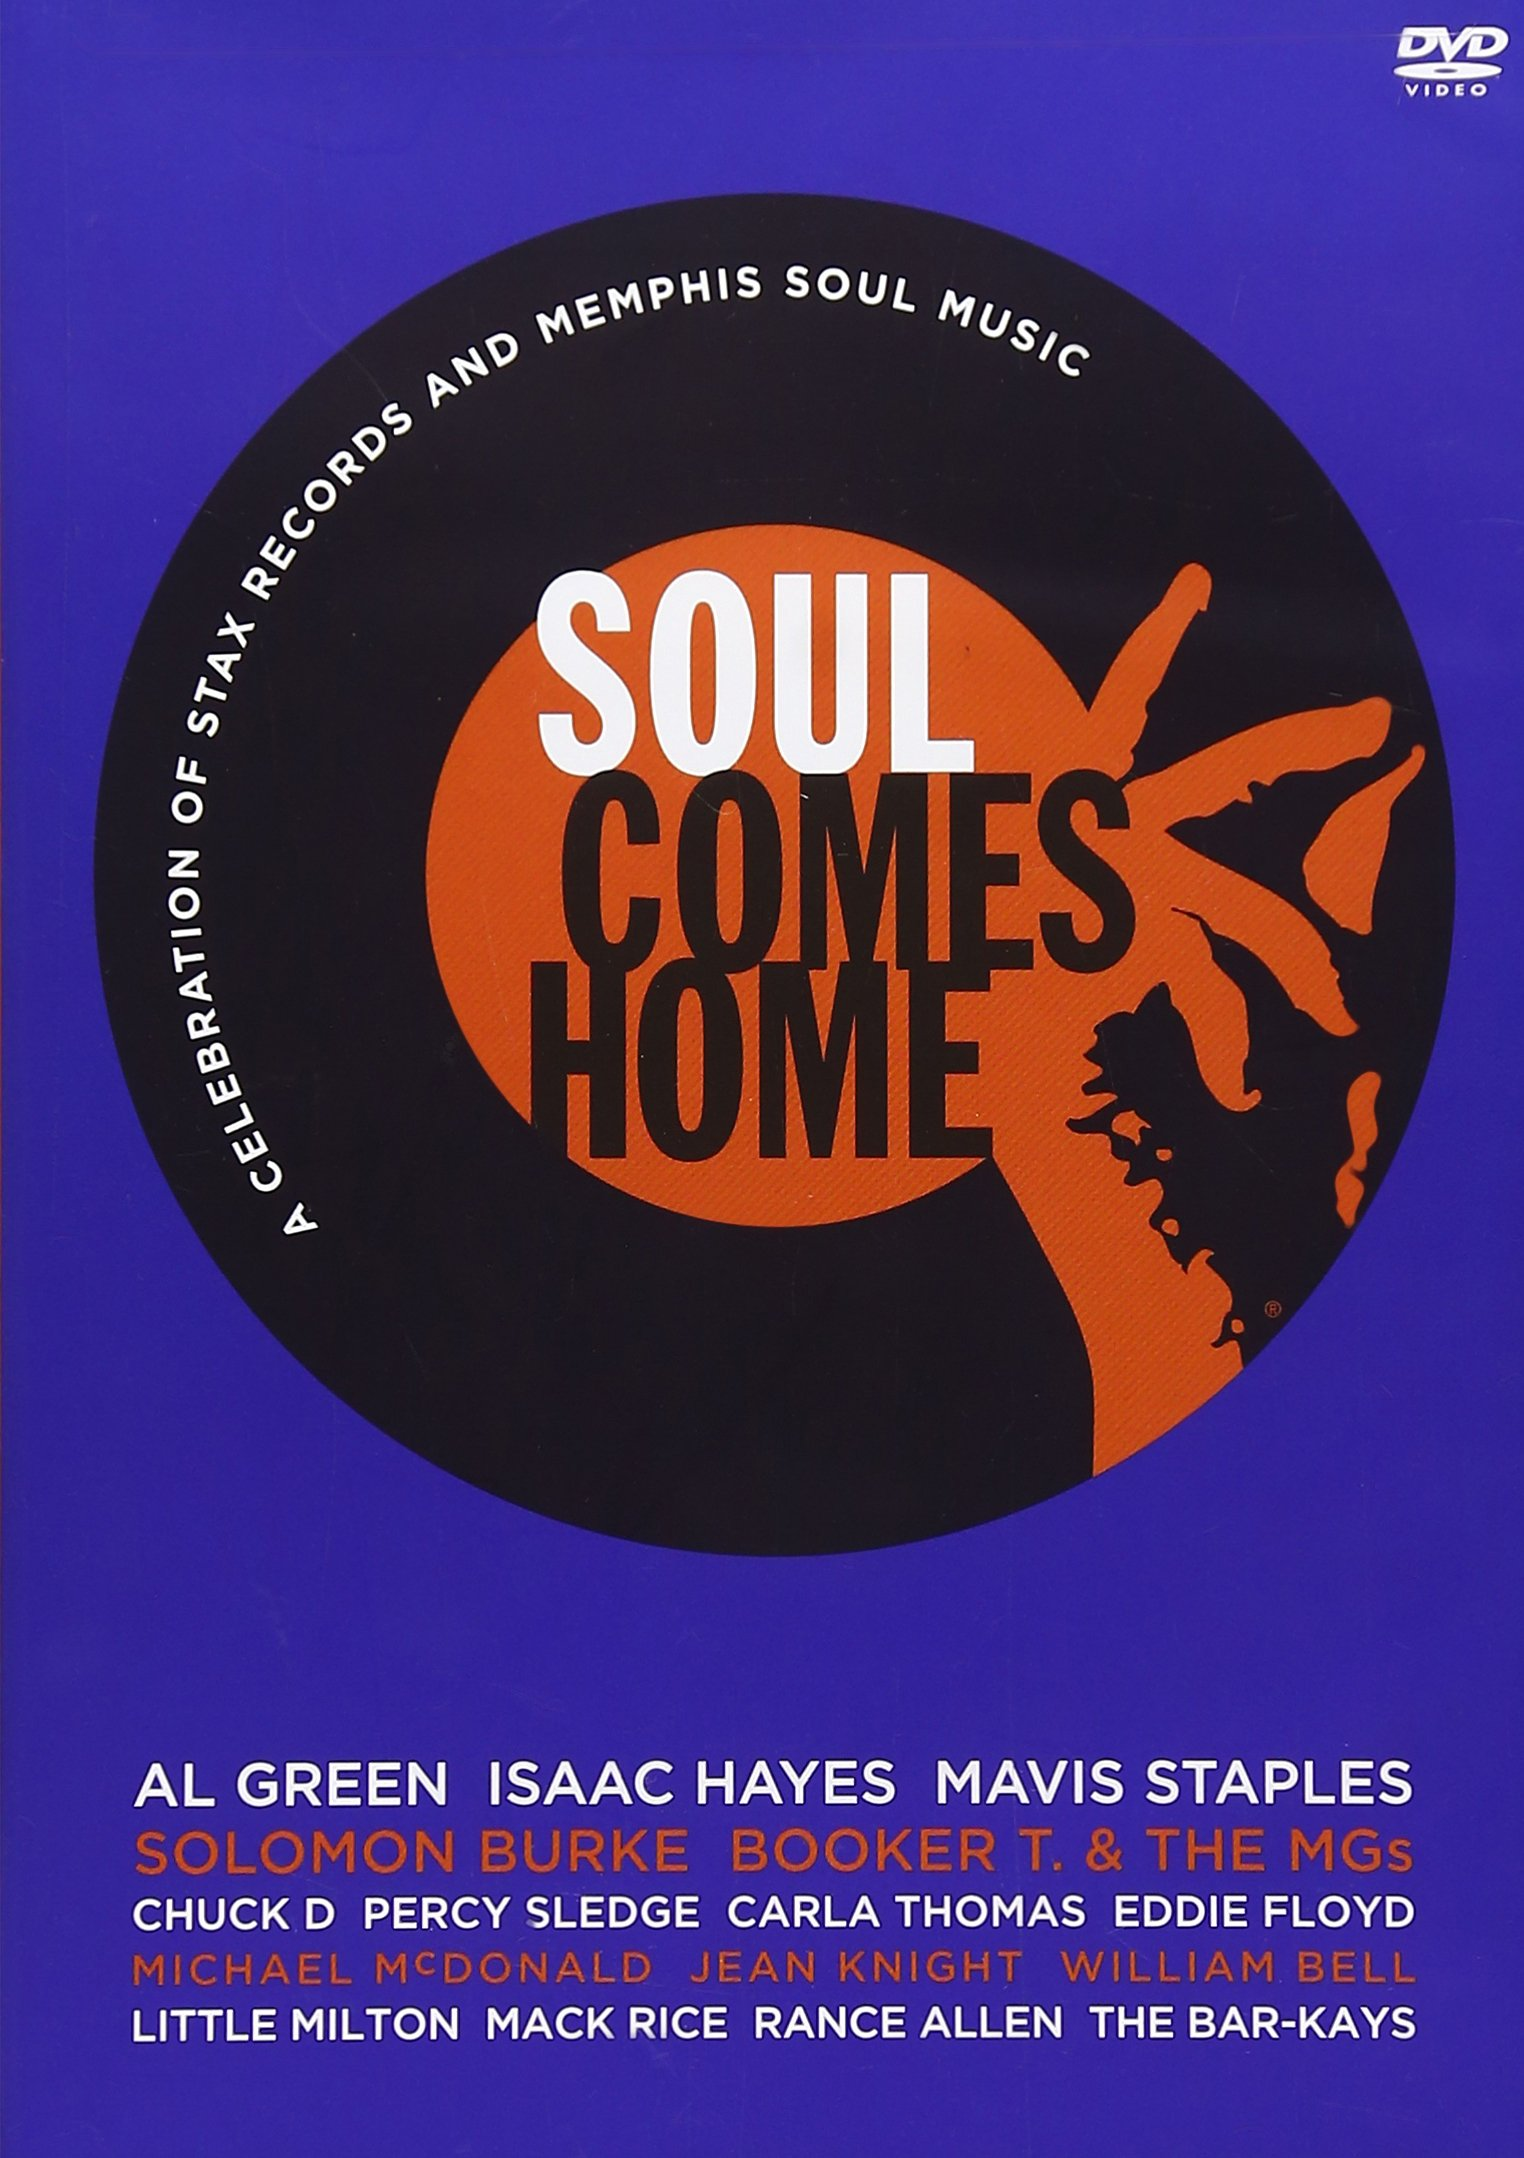 DVD : Richard Roundtree - Soul Comes Home: A Celebration Of Stax Records And Memphis Soul Music (DVD)